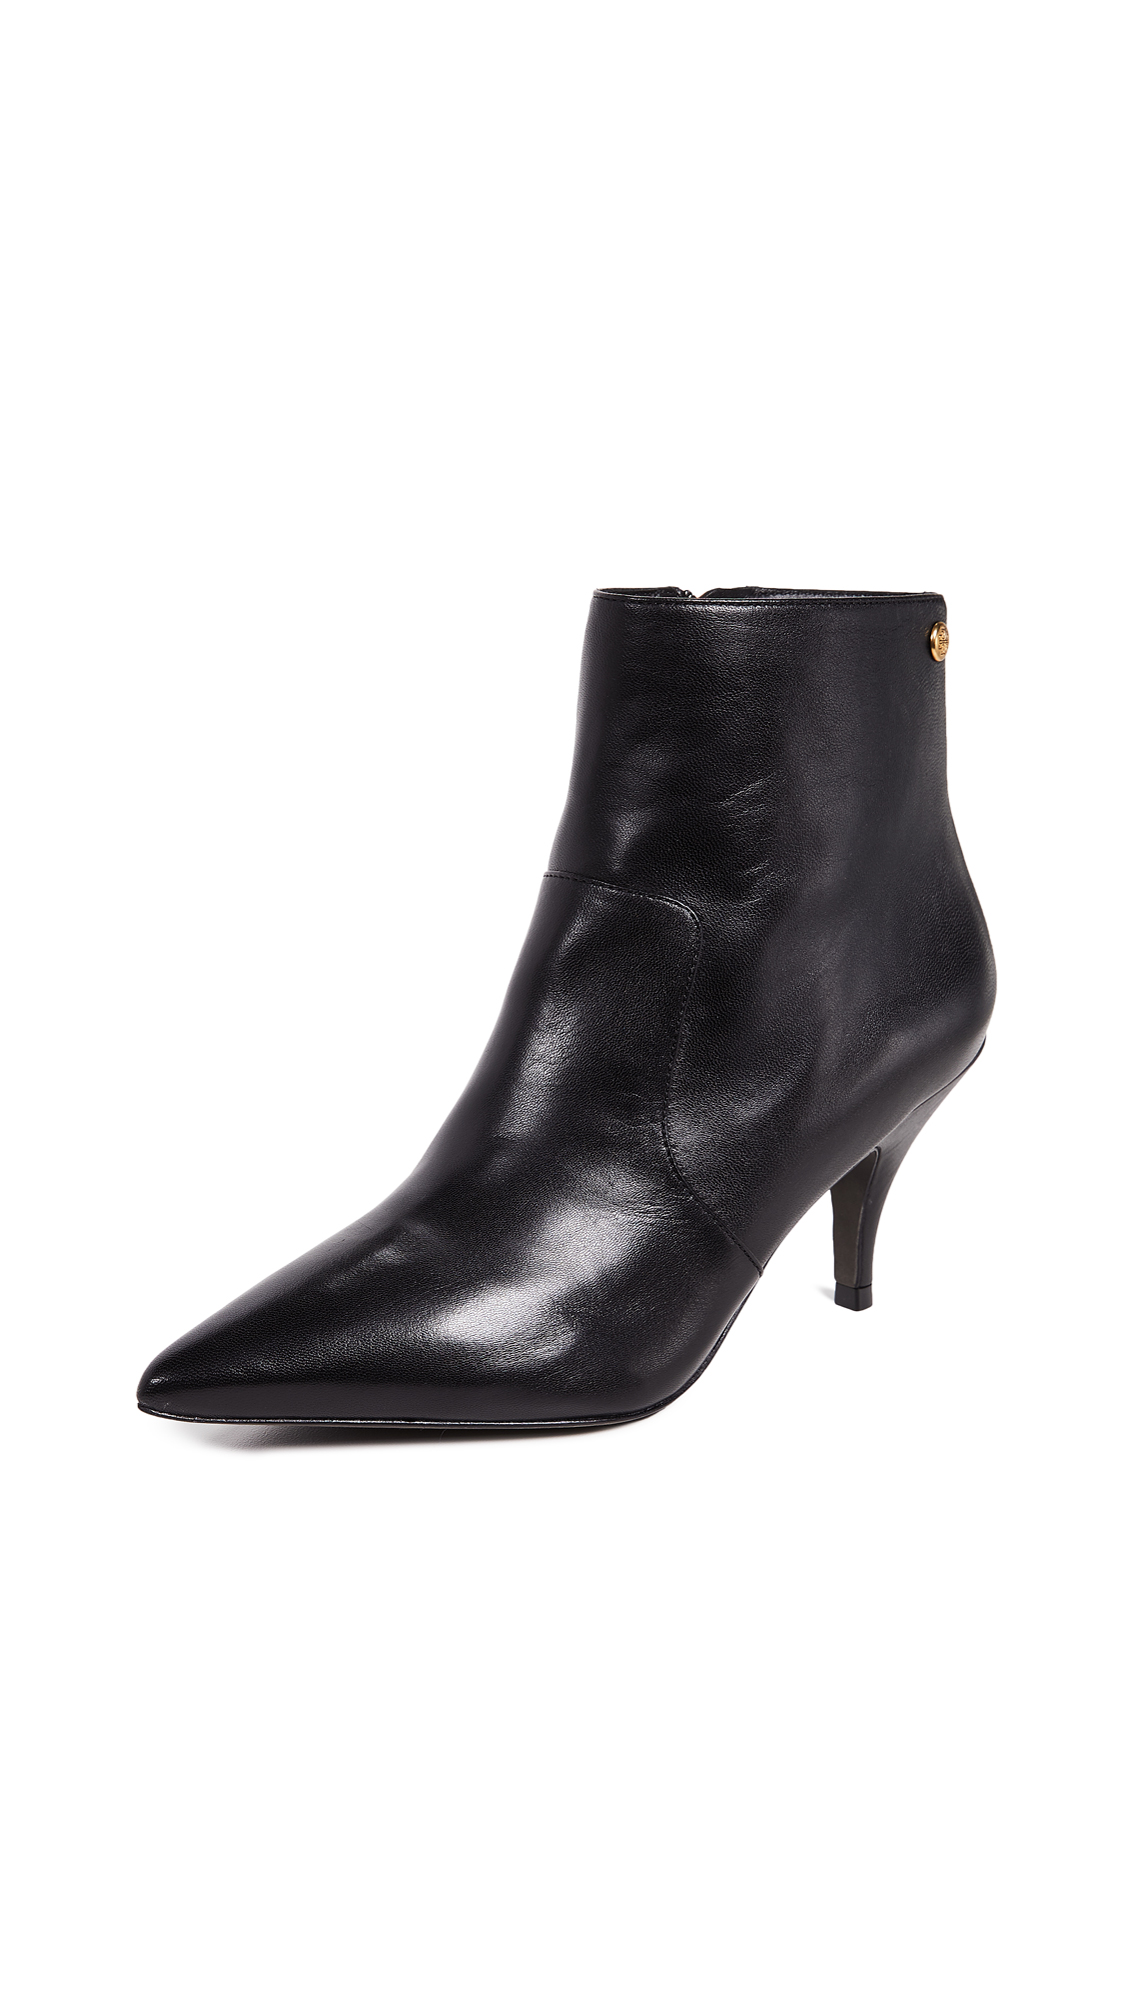 Tory Burch Georgina Booties - Perfect Black